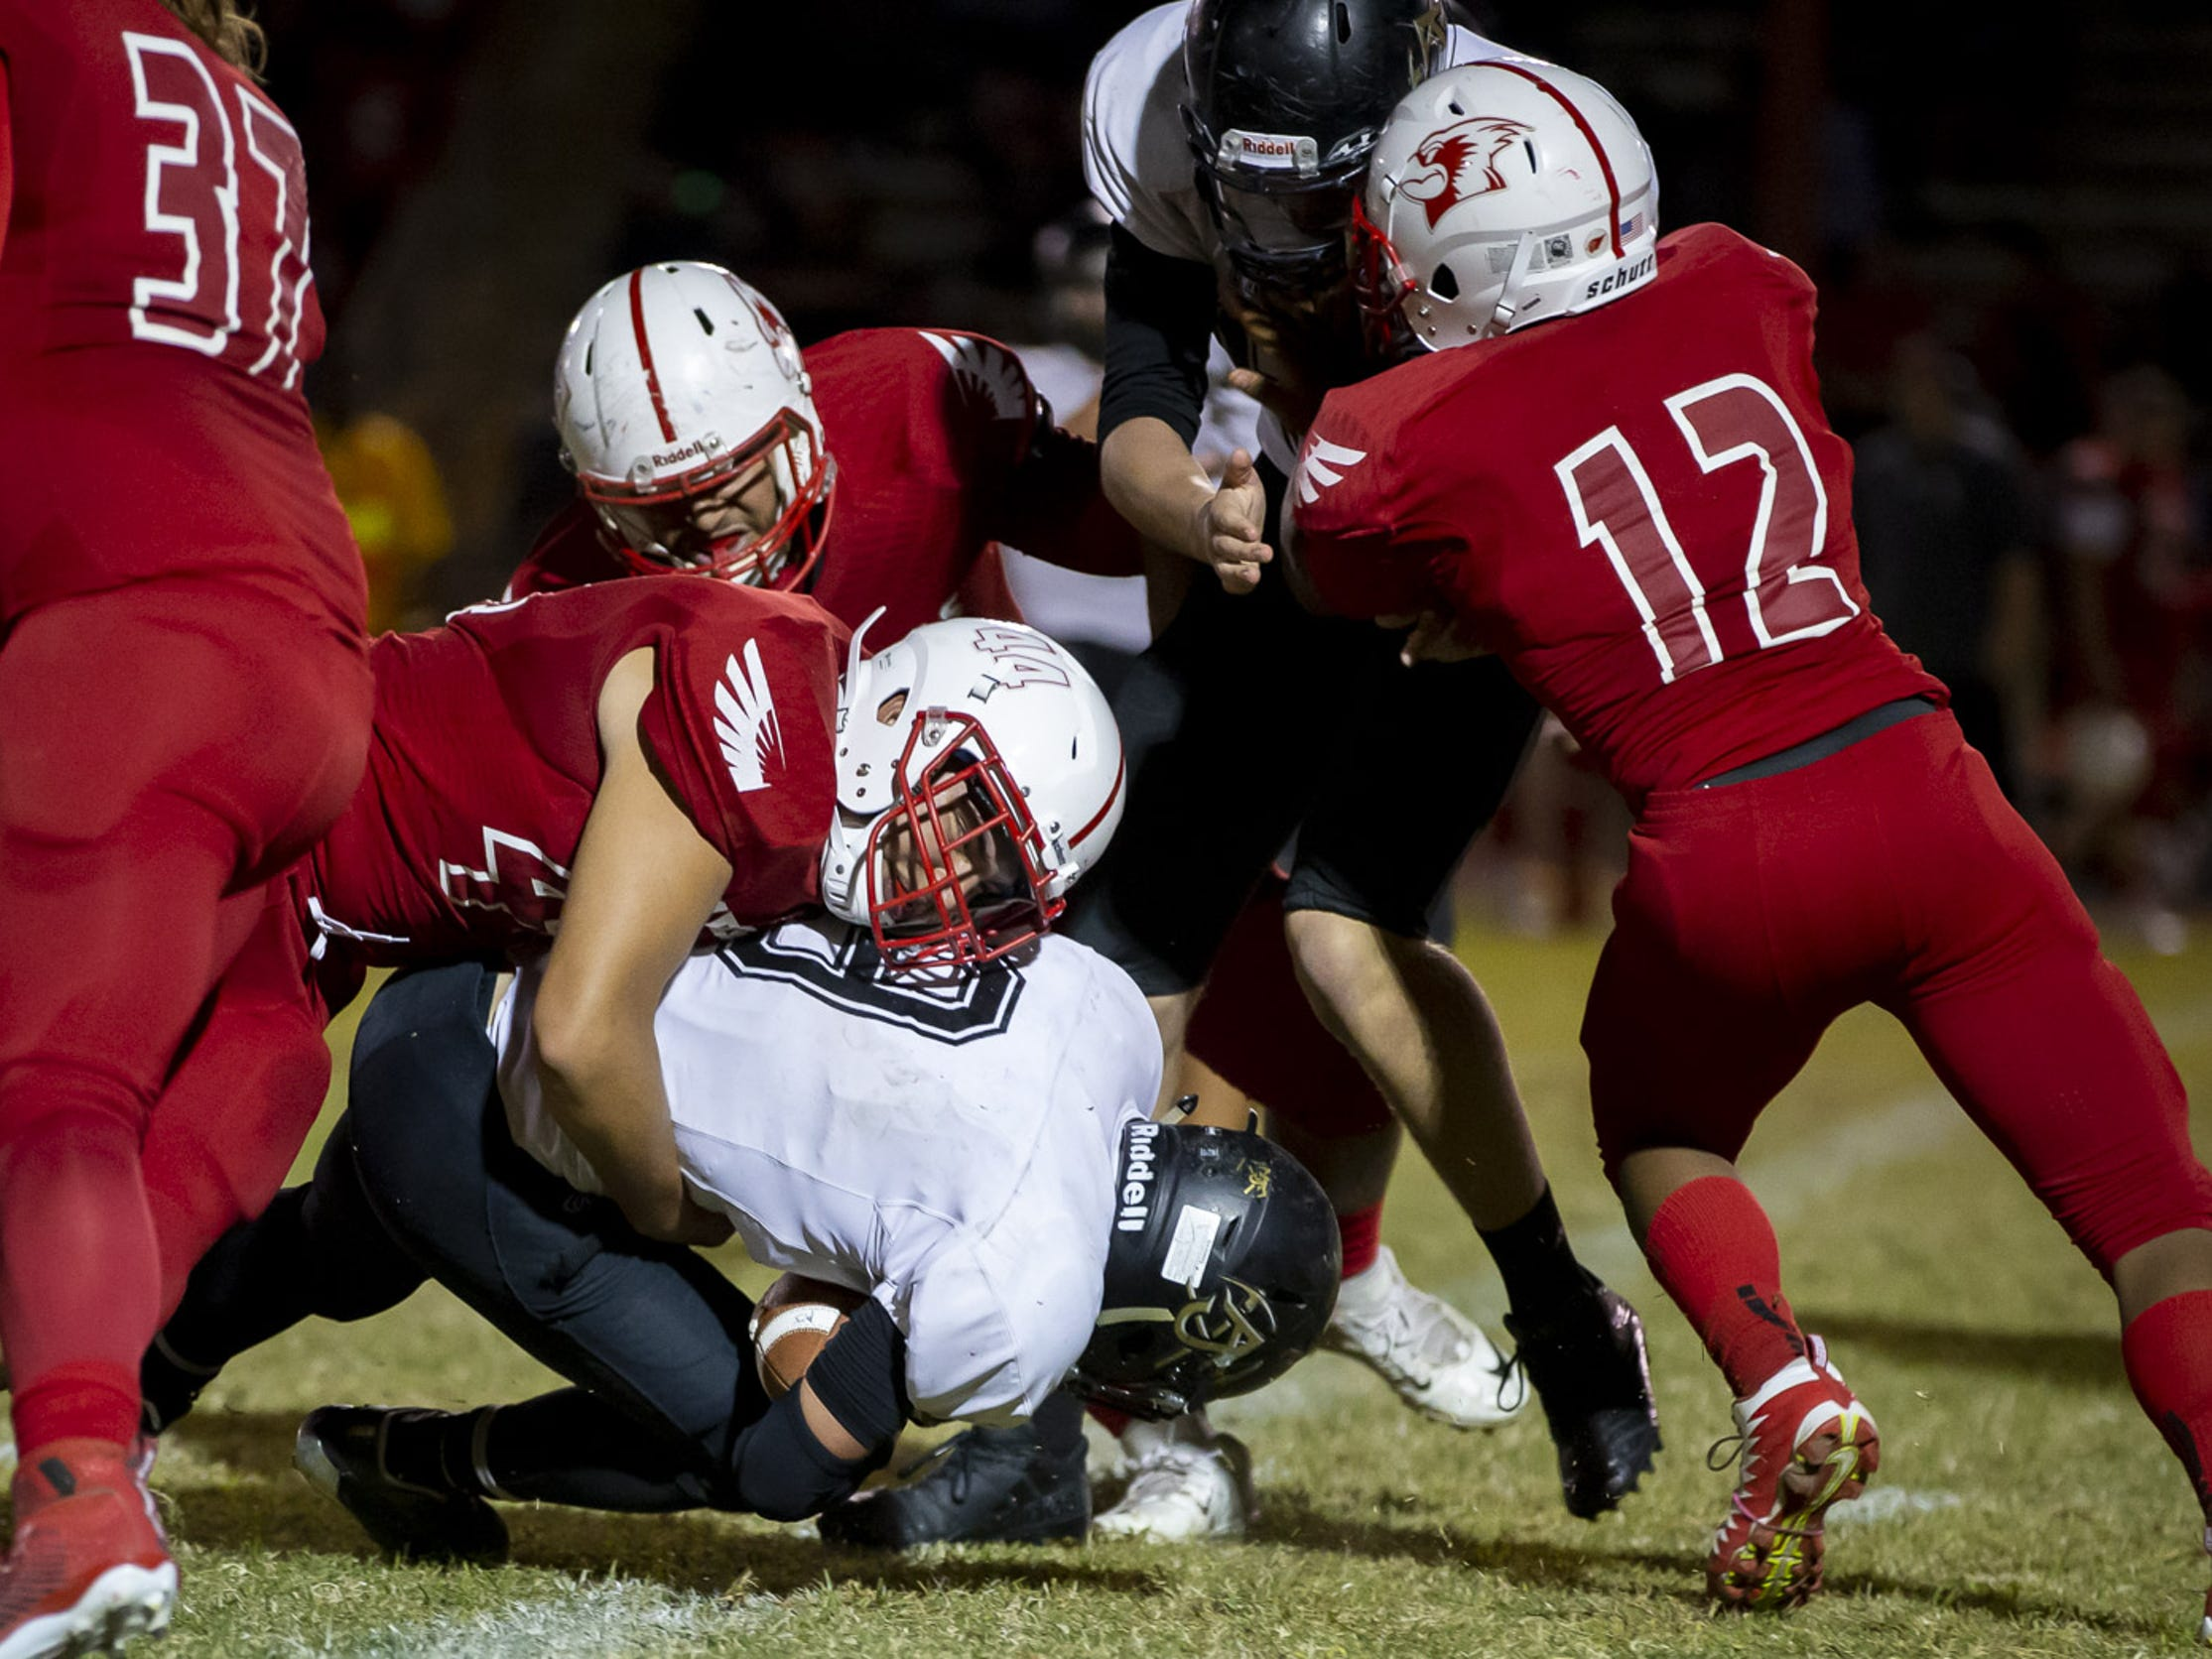 William Lohman (9) of the Apache Junction Prospectors is tackled by senior middle linebacker Brannon Lopez (44) of the Glendale Cardinals at Glendale High School on Friday, October 19, 2018 in Glendale, Arizona. #azhsfb